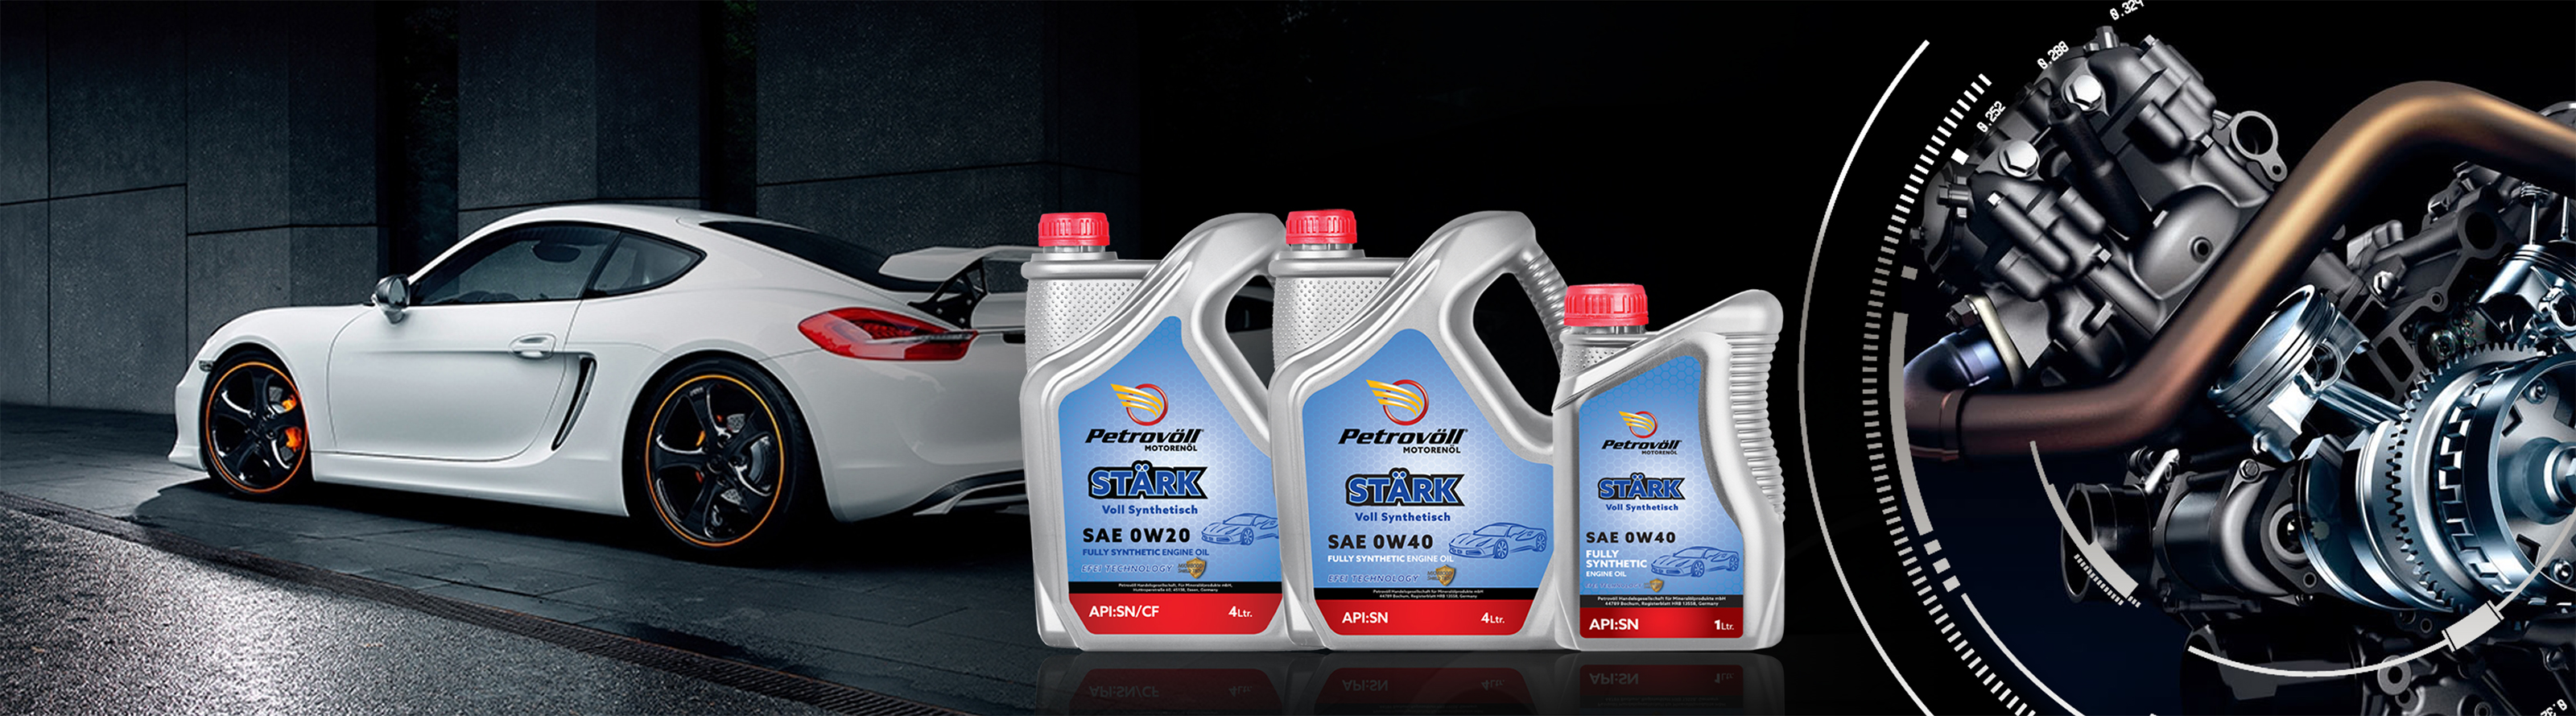 Petrovoll Gasoline Engine OilsPetrovoll Gasoline Engine Oils